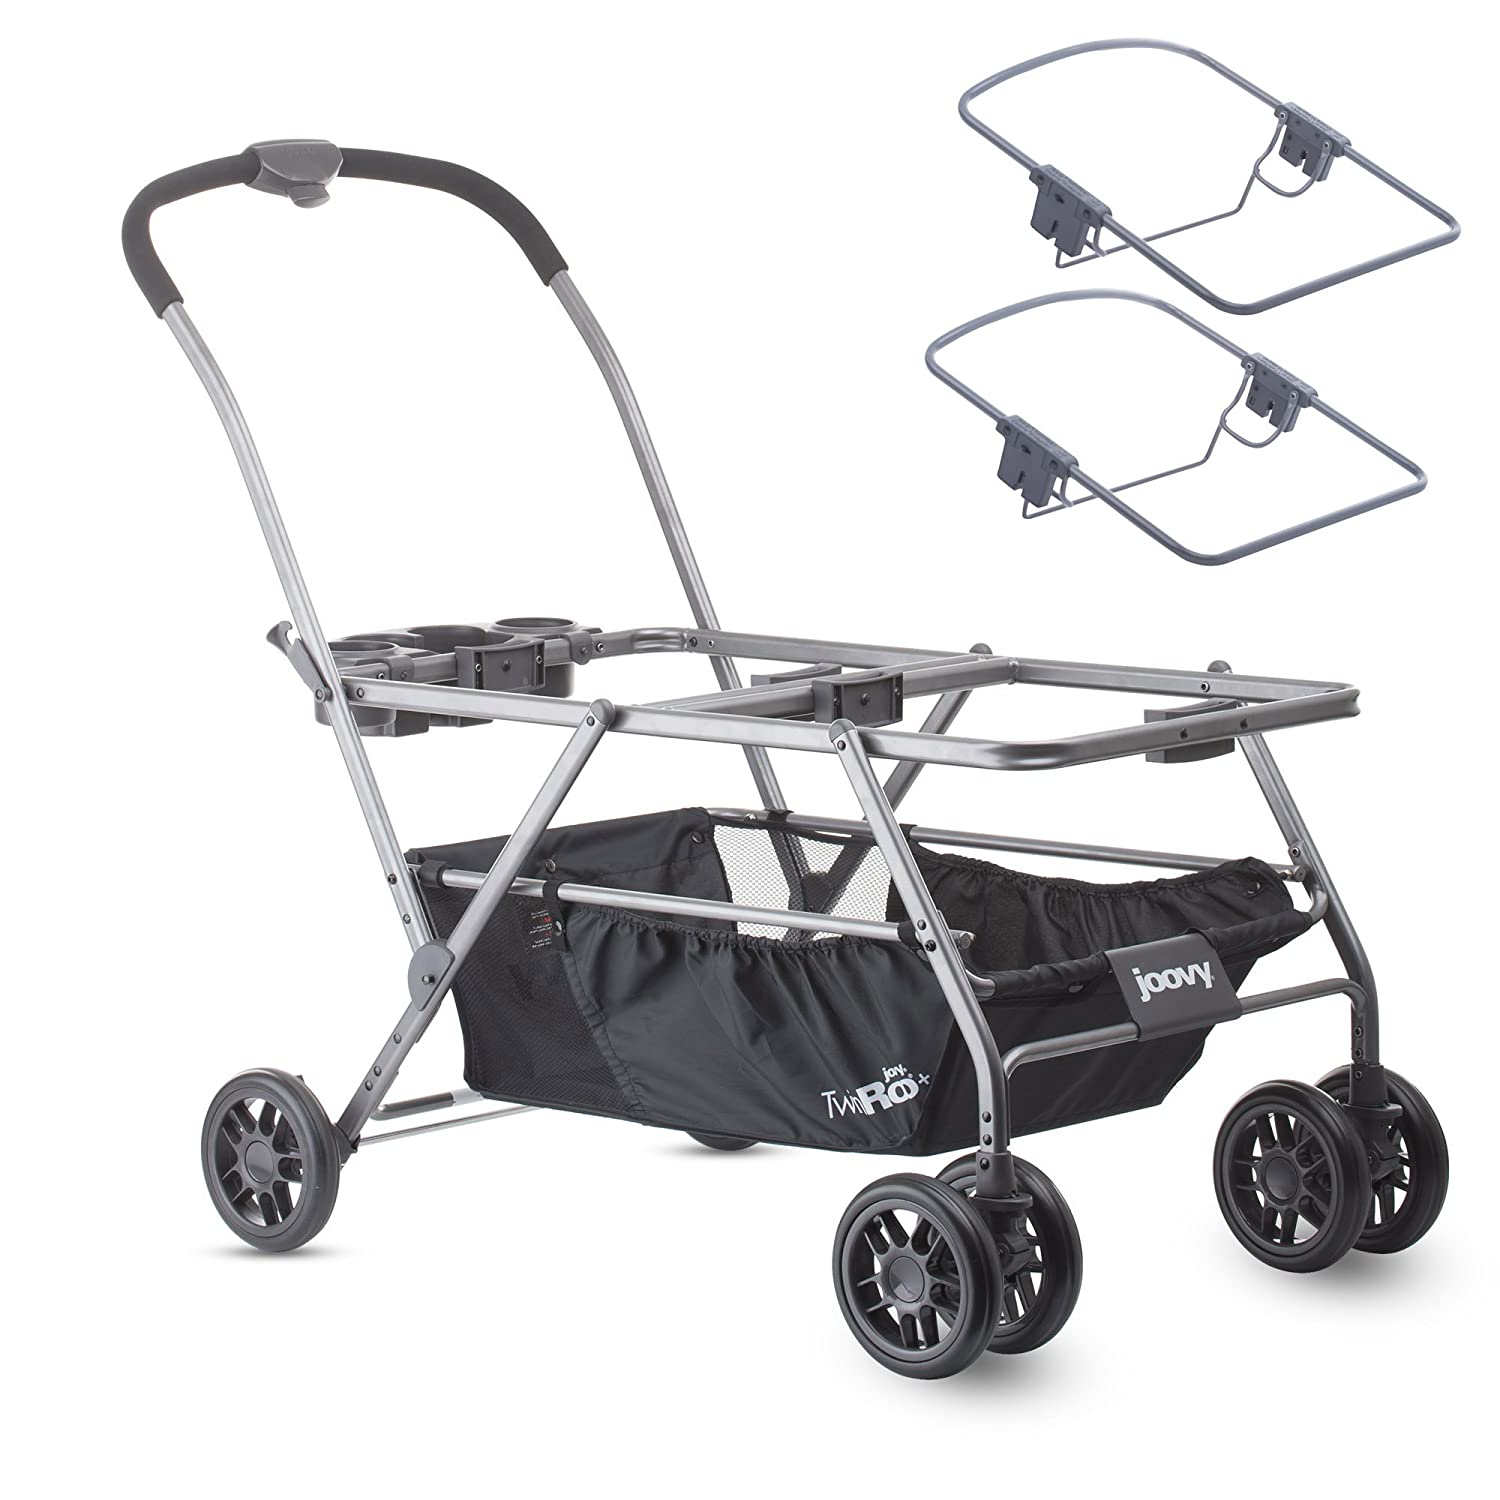 Joovy Twin Roo Car Seat Stroller, Double Strollers With Car Seats